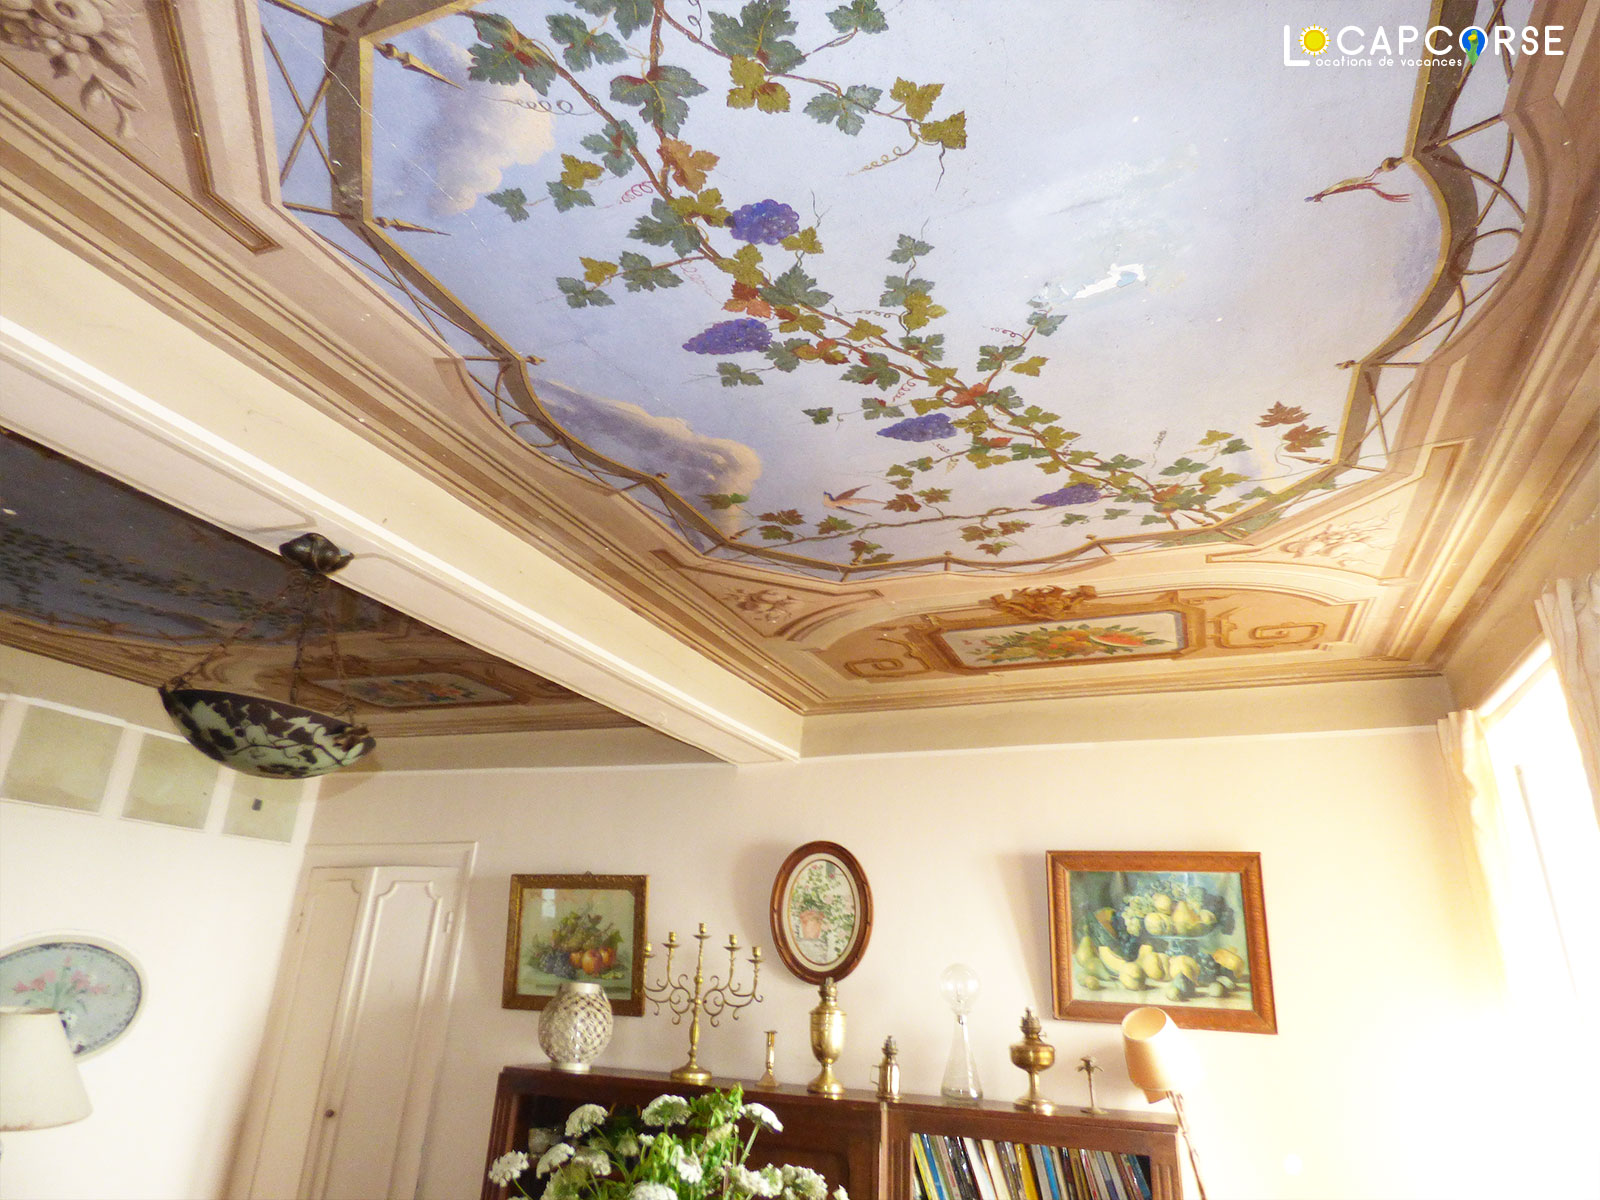 Locations Cap Corse - The beautiful painted ceiling of the dining room